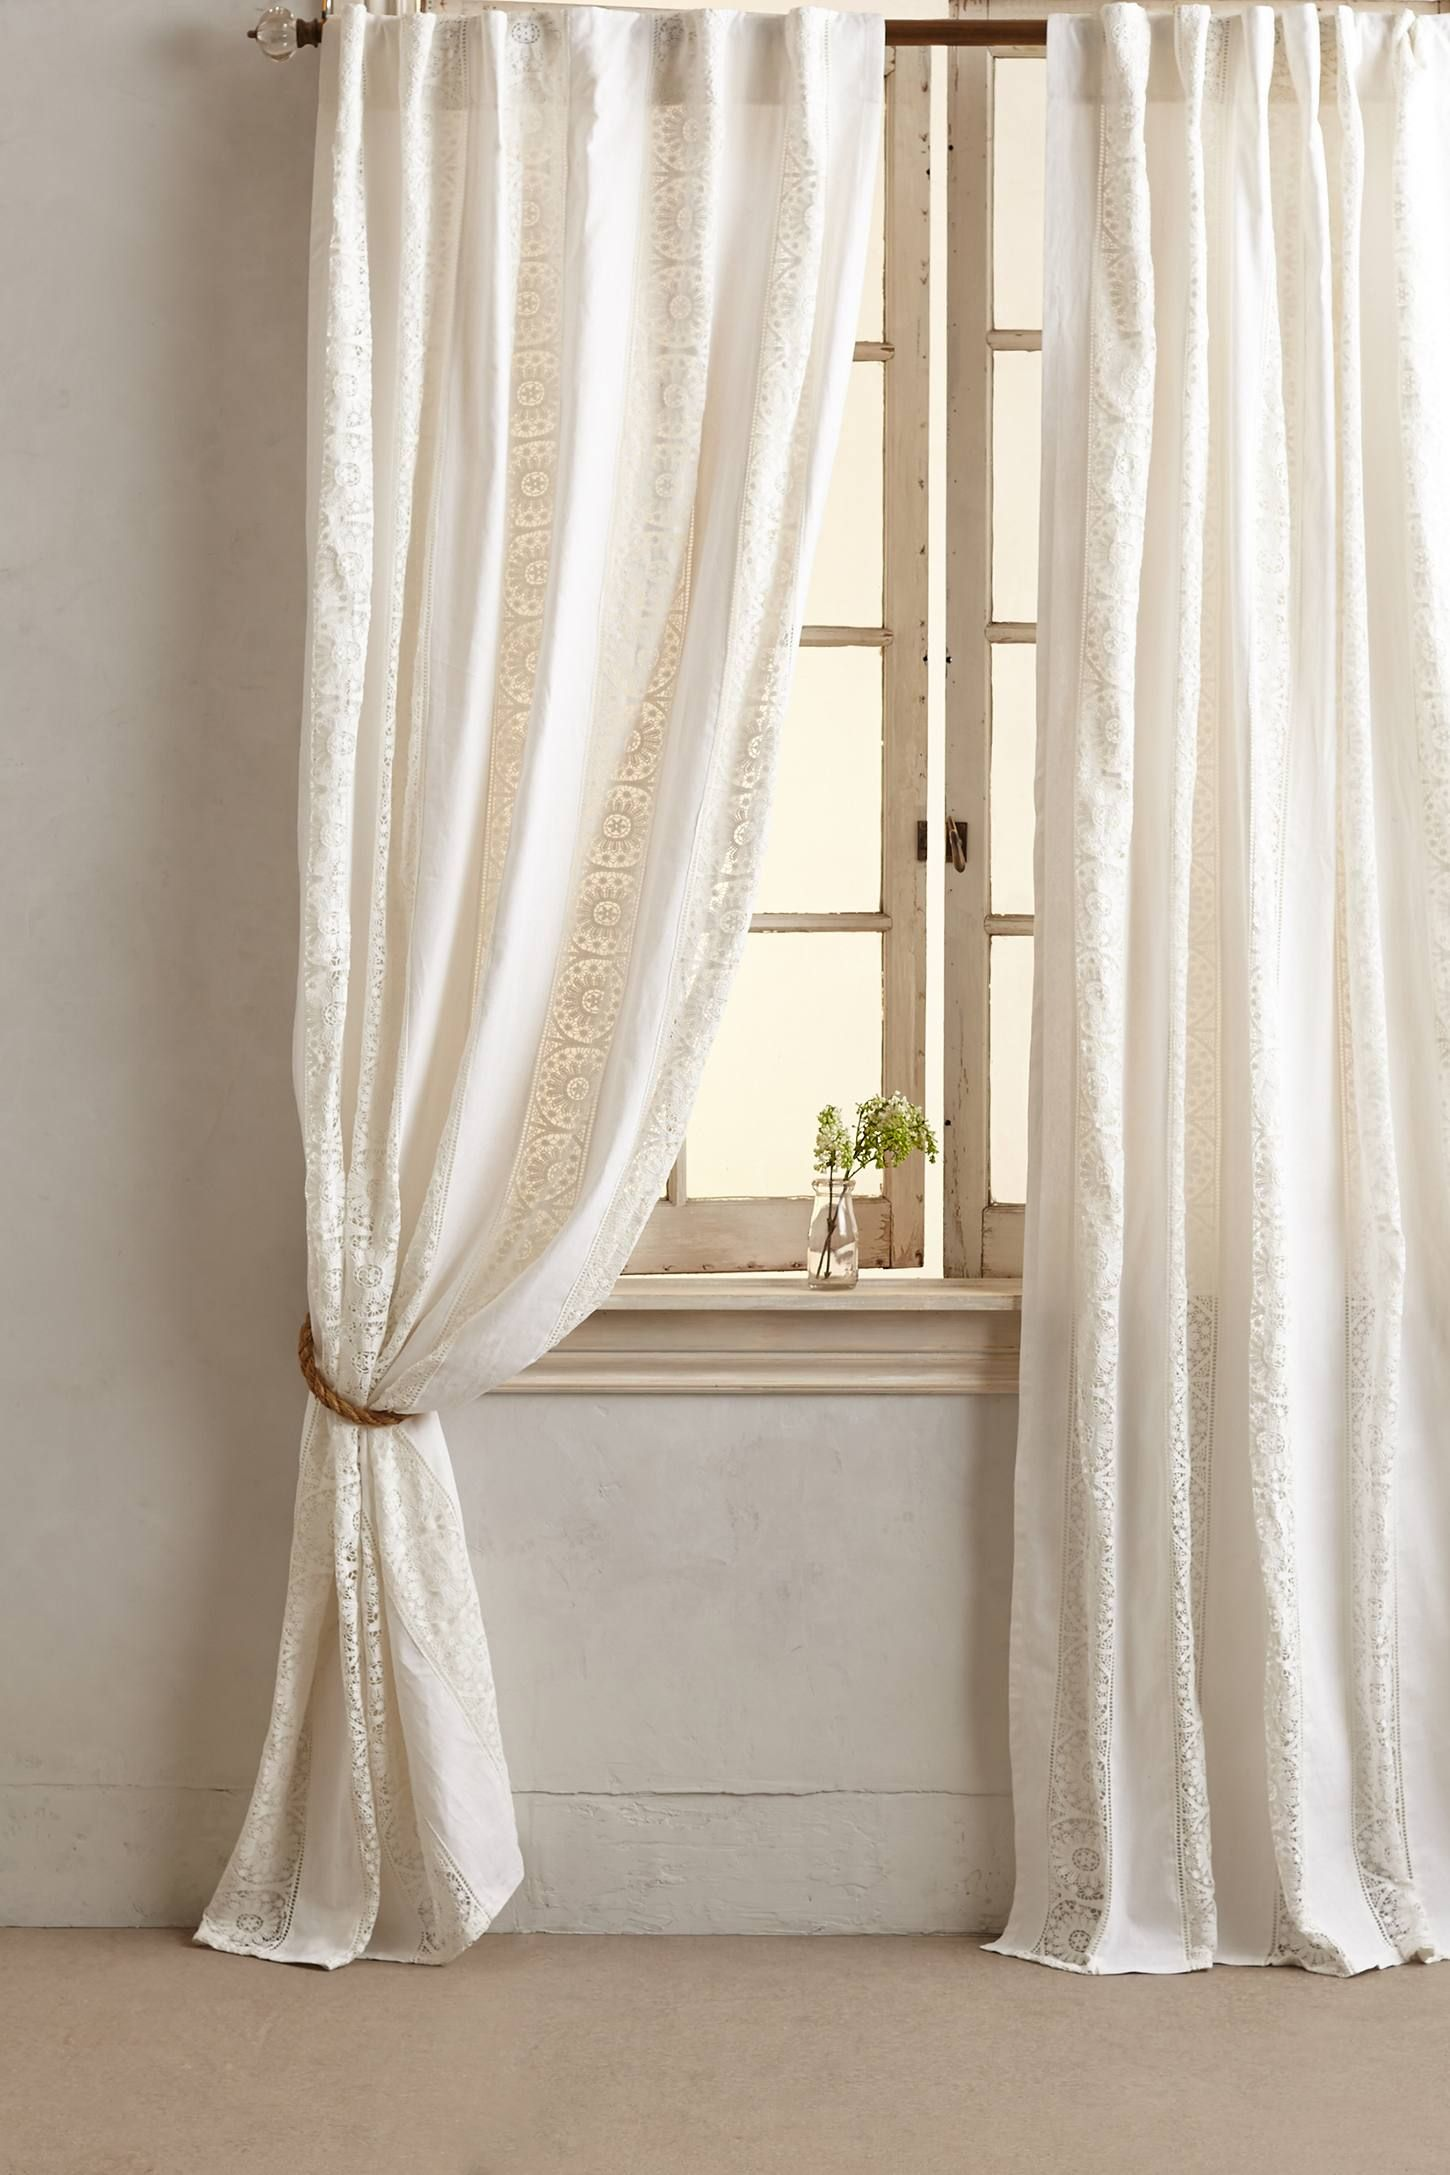 Florentine Curtain All White Room Curtains Living Room Curtains